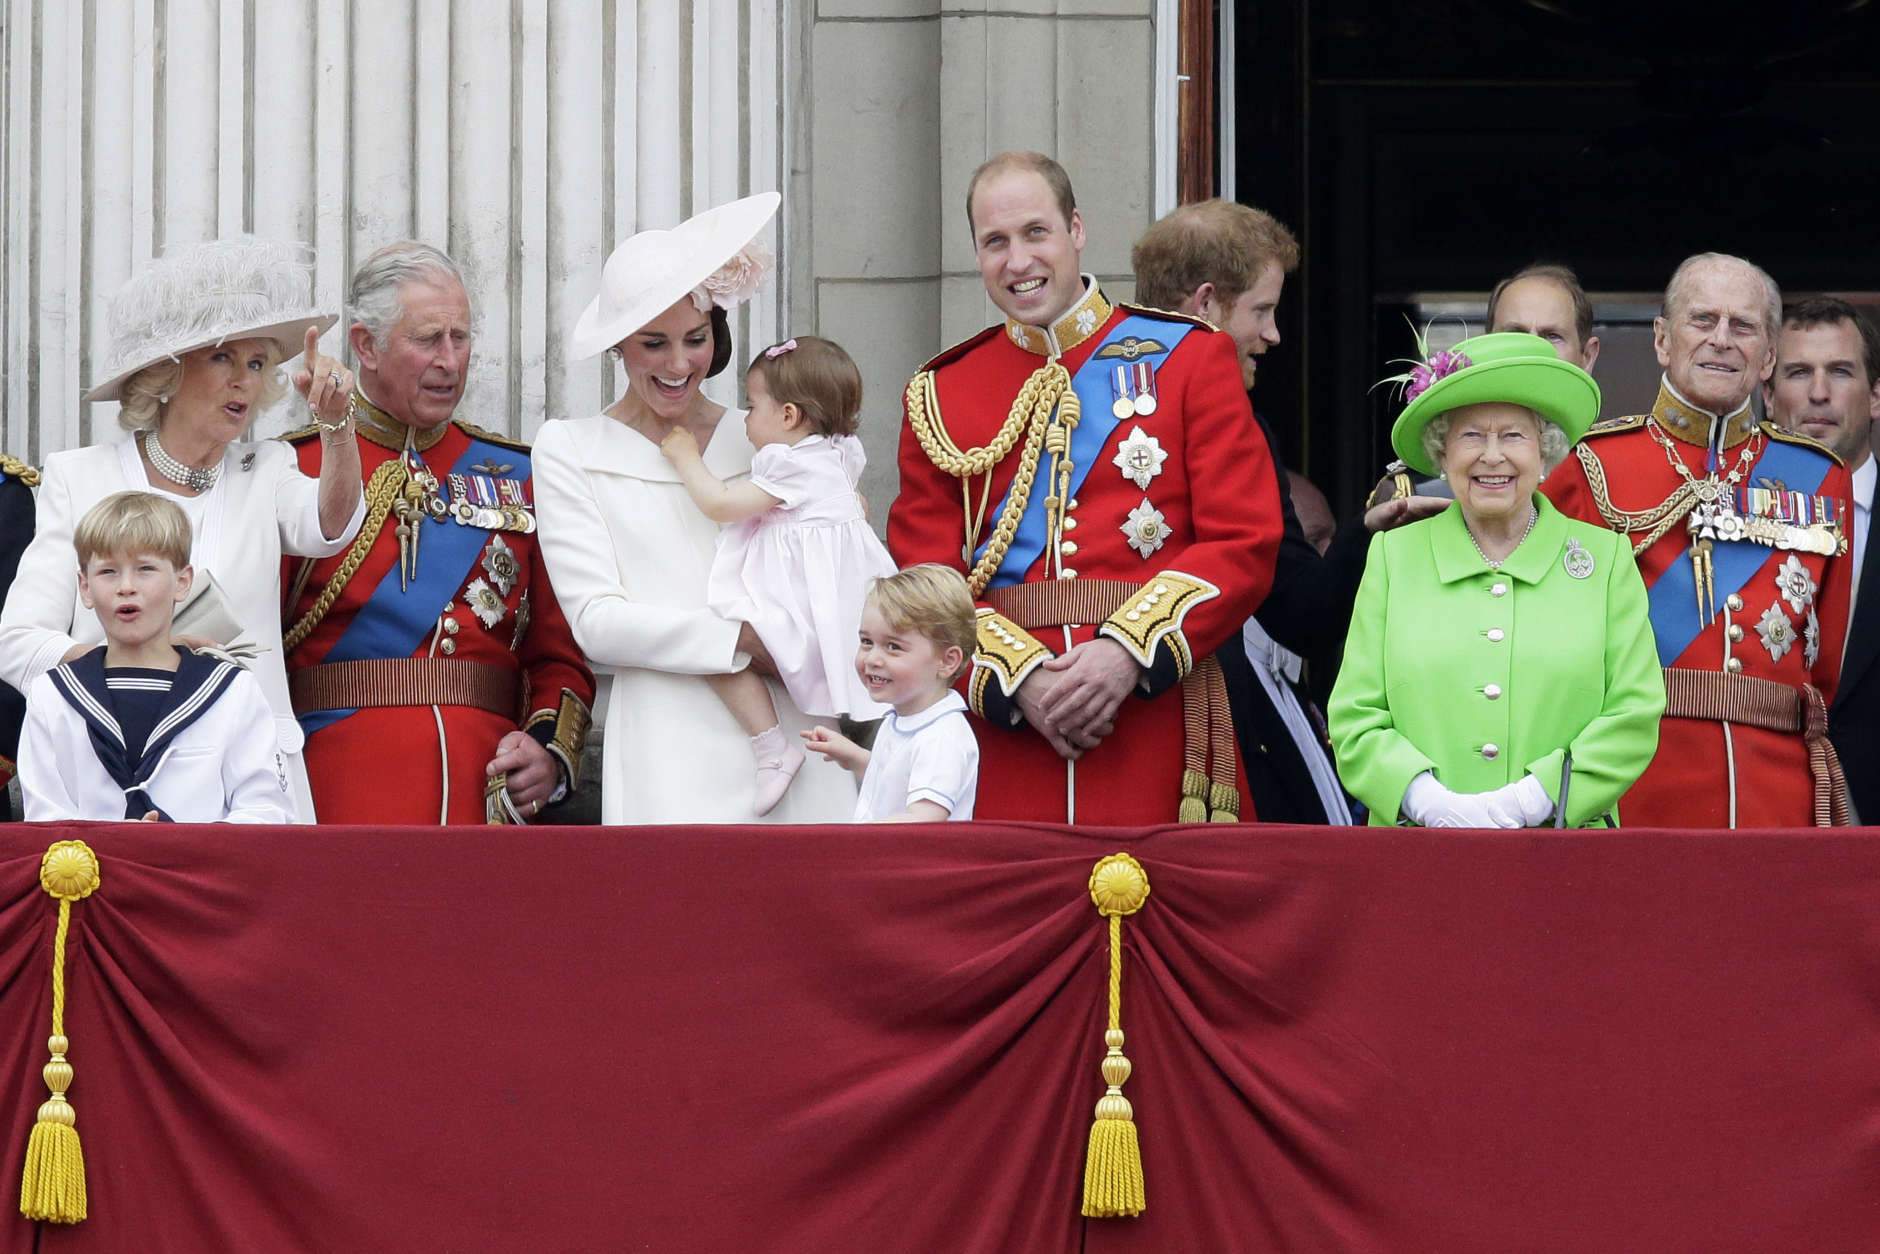 """Britain's Queen Elizabeth II smiles with Prince Philip, right, Prince William, centre, his son Prince George, front, Kate, Duchess of Cambridge holding Princess Charlotte, centre left, The Prince of Wales and The Duchess of Cambridge, left, on the balcony during the Trooping The Colour parade at Buckingham Palace, in London, Saturday, June 11, 2016. Hundreds of soldiers in ceremonial dress have marched in London in the annual Trooping the Colour parade to mark the official birthday of Queen Elizabeth II. The Trooping the Colour tradition originates from preparations for battle, when flags were carried or """"trooped"""" down the rank for soldiers to see. (AP Photo/Tim Ireland)"""